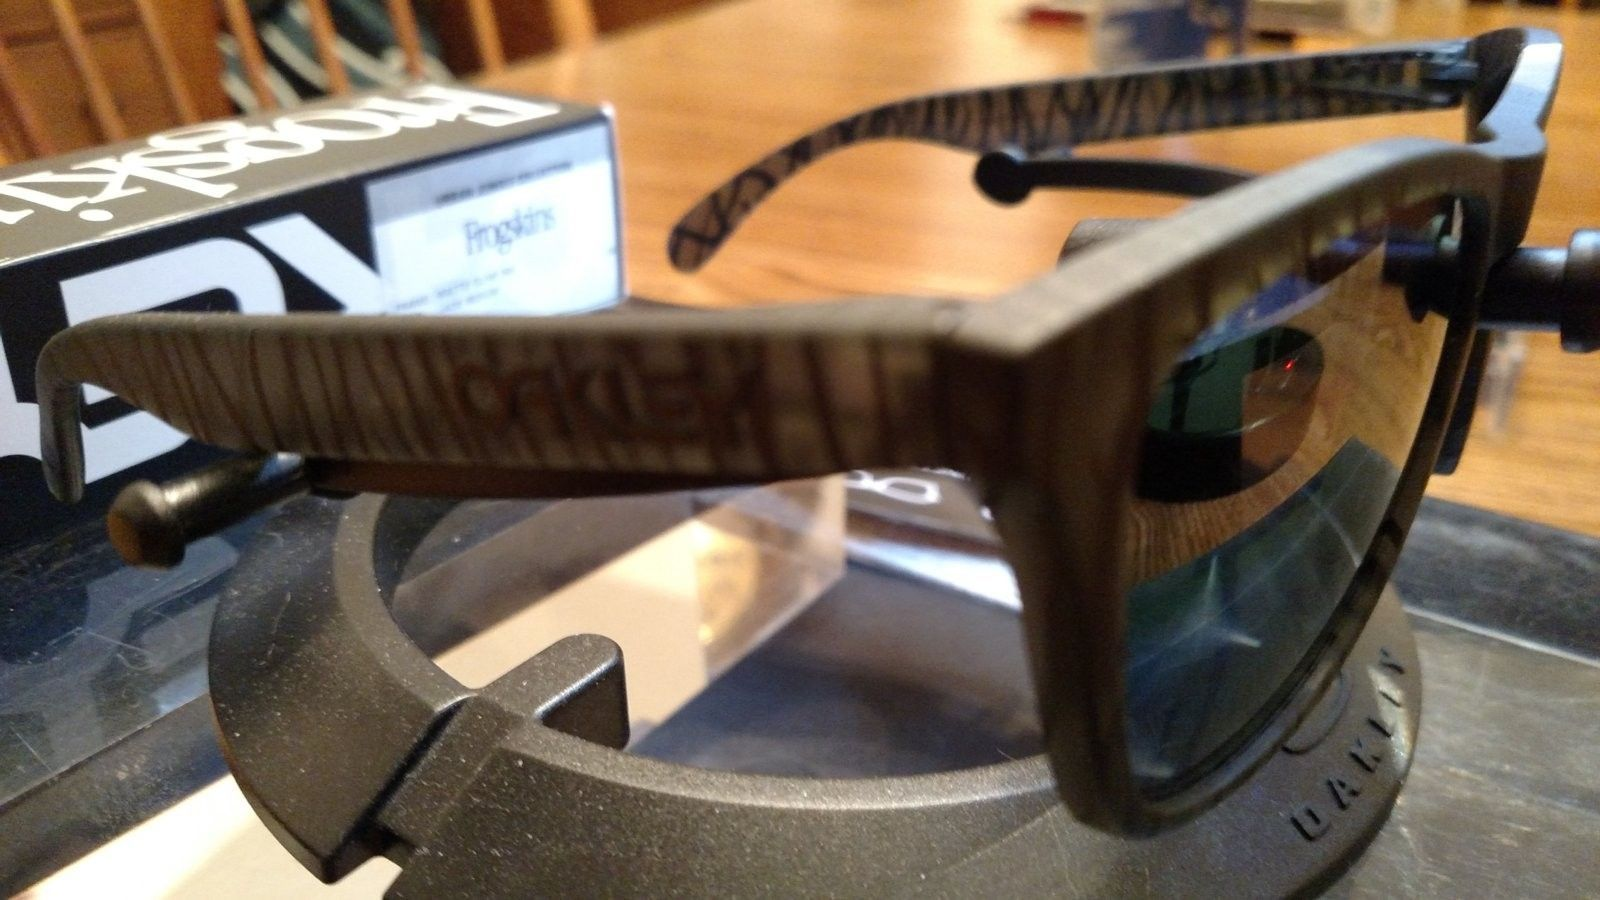 Urban Jungle Collection Frogskins-Matte Olive Ink/Jade Iridium, BNIB - IMG_20160517_201946221.jpg